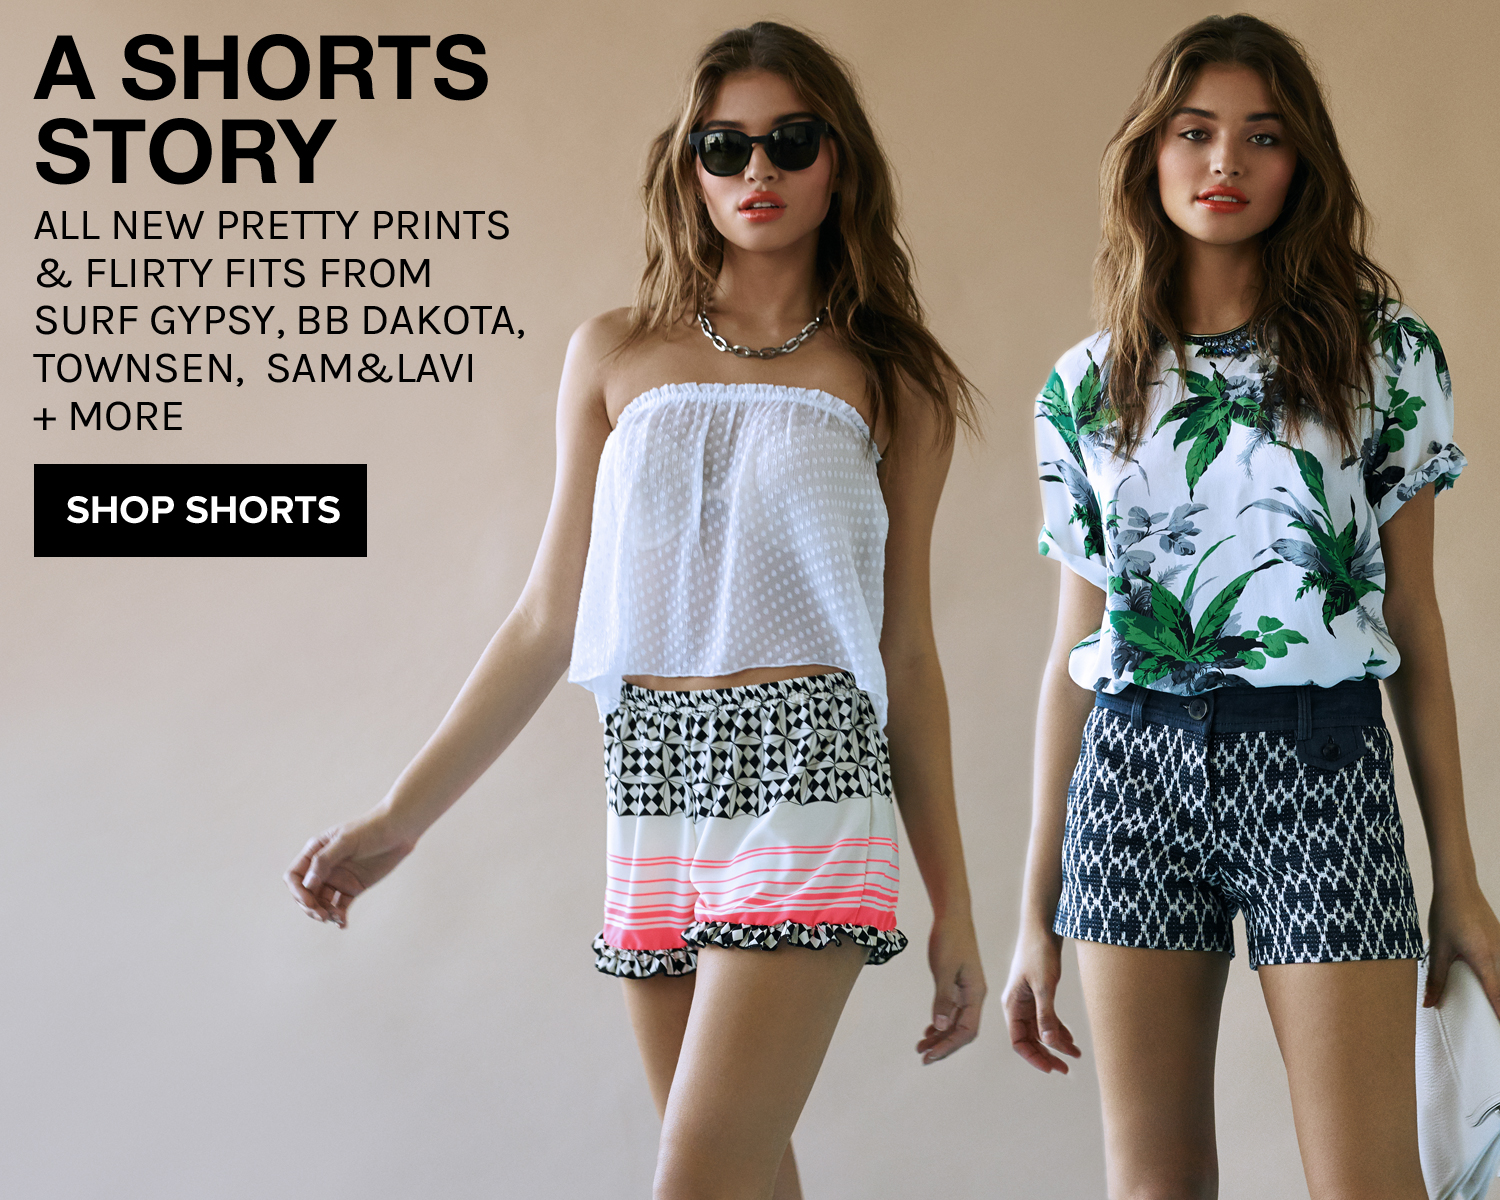 A SHORTS STORY: All new pretty prints and flirty fits from Surf Gypsy, BB Dakota, Townsen, SAM&LAVI + More!